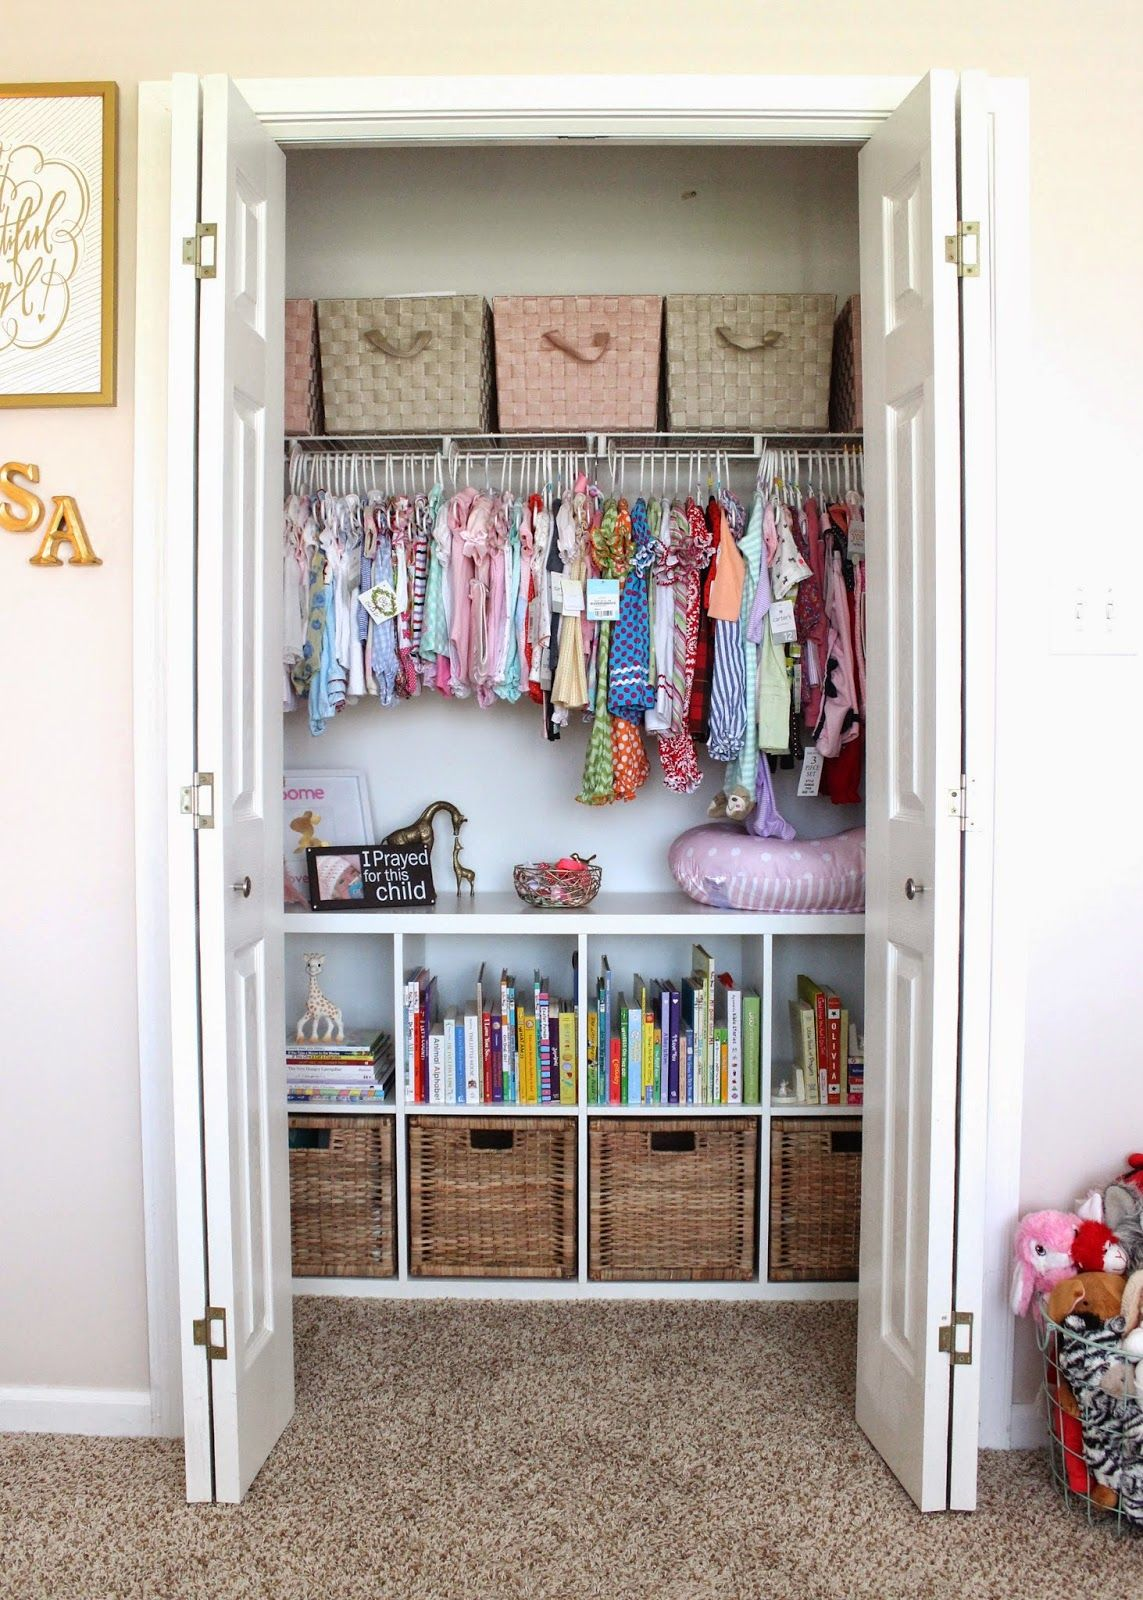 Dwelling Telling Sa Ann S Pink And Gold Nursery Closet Organization For Baby Small